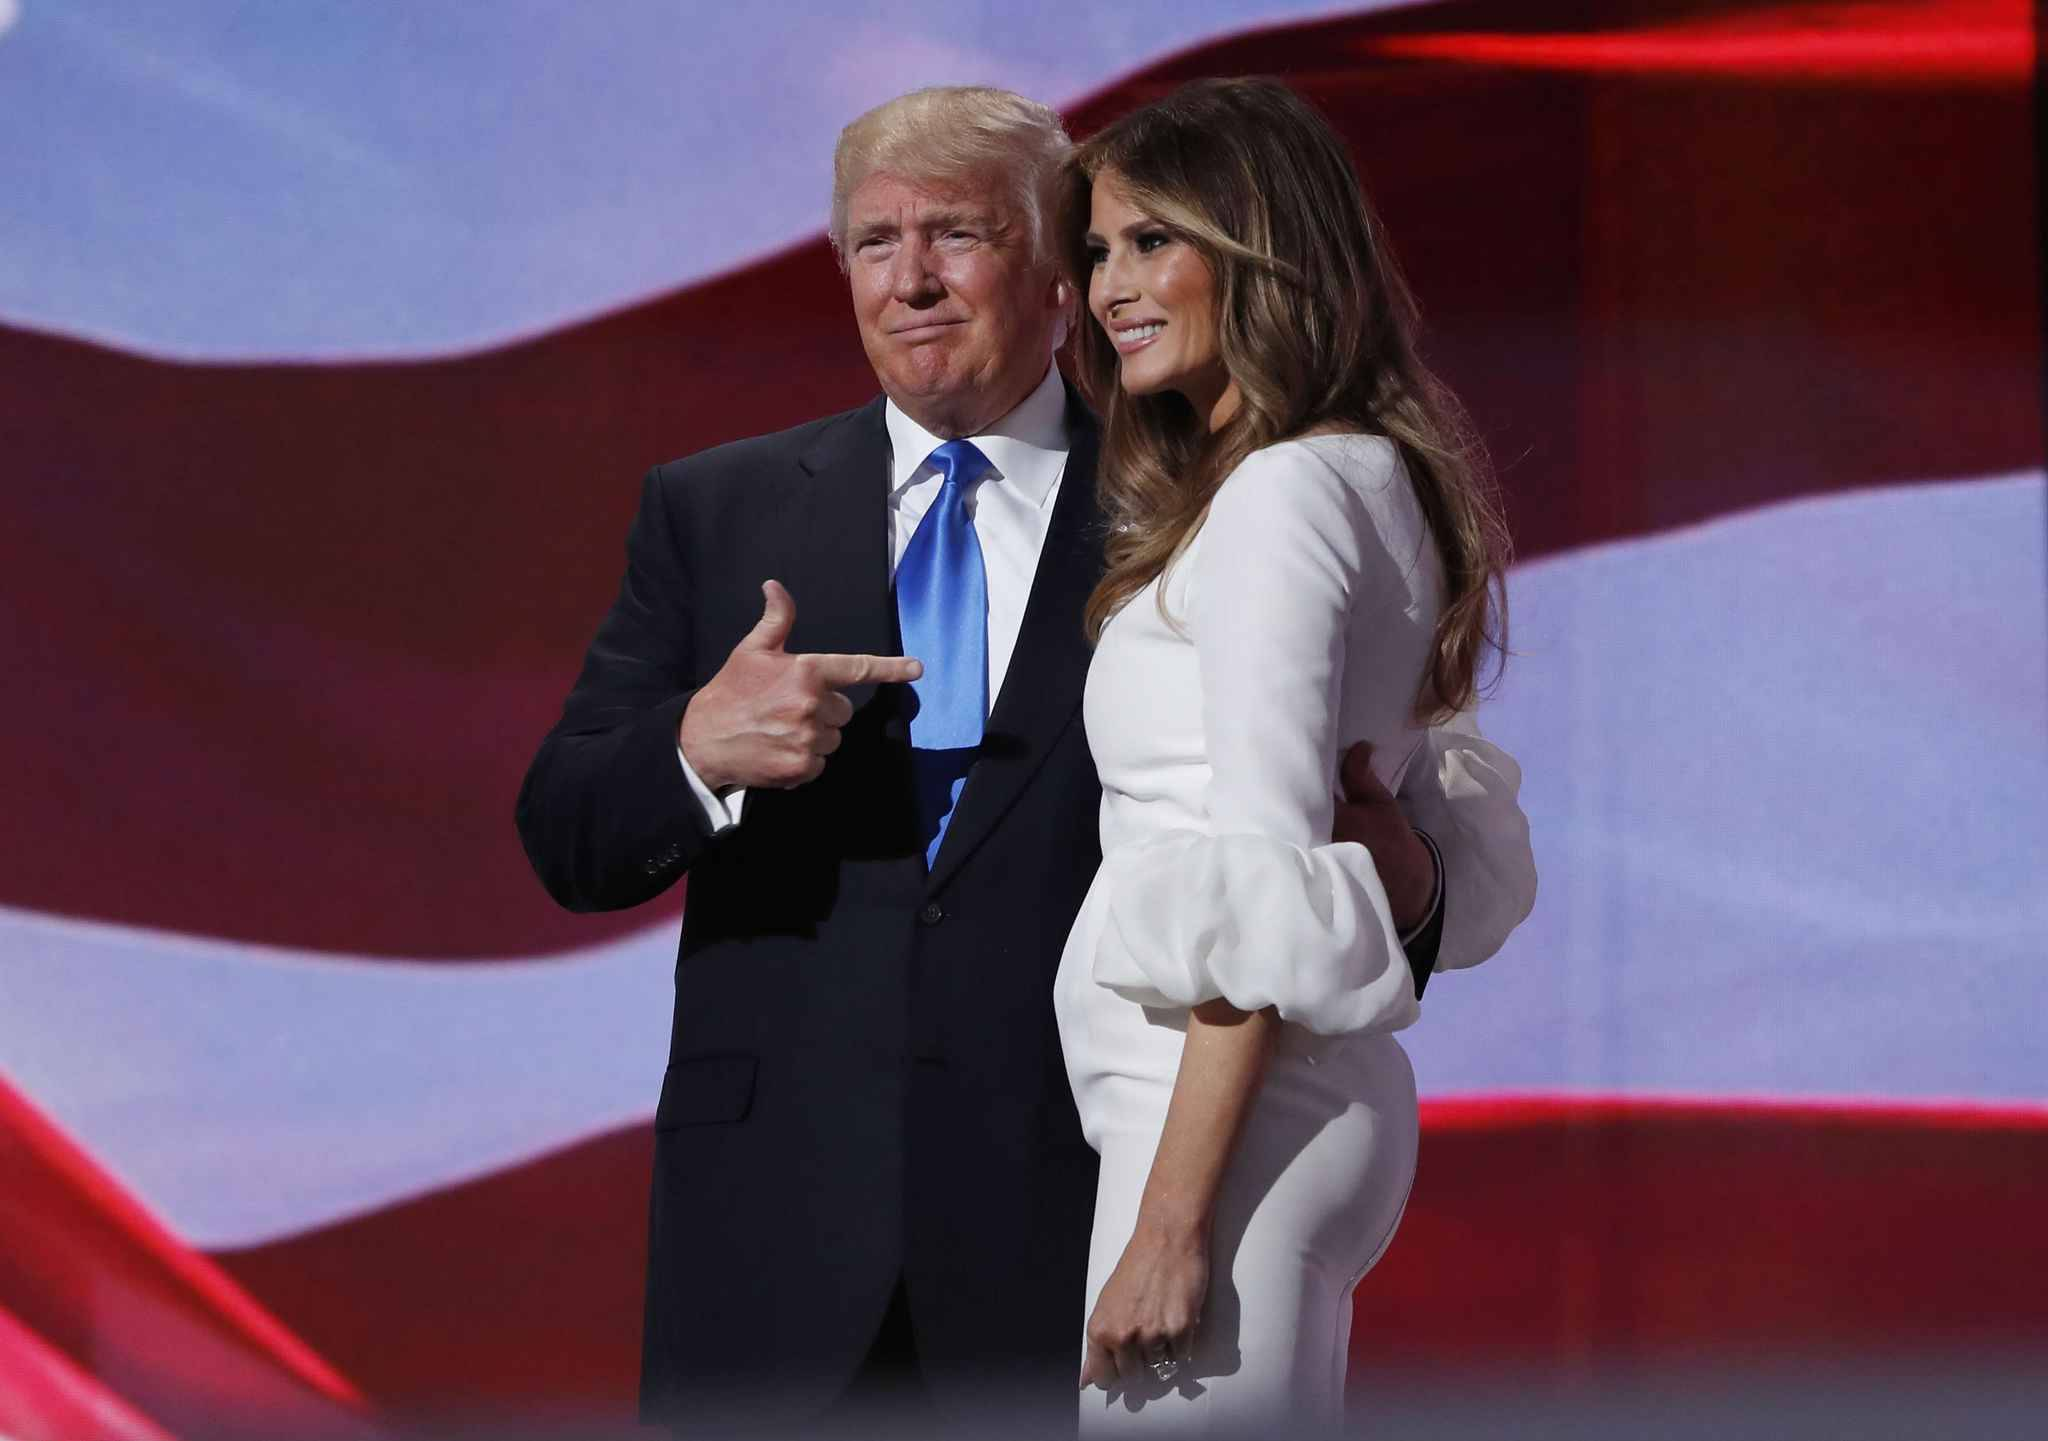 refutant passe descort girl melania trump reclame millions dollars daily mail